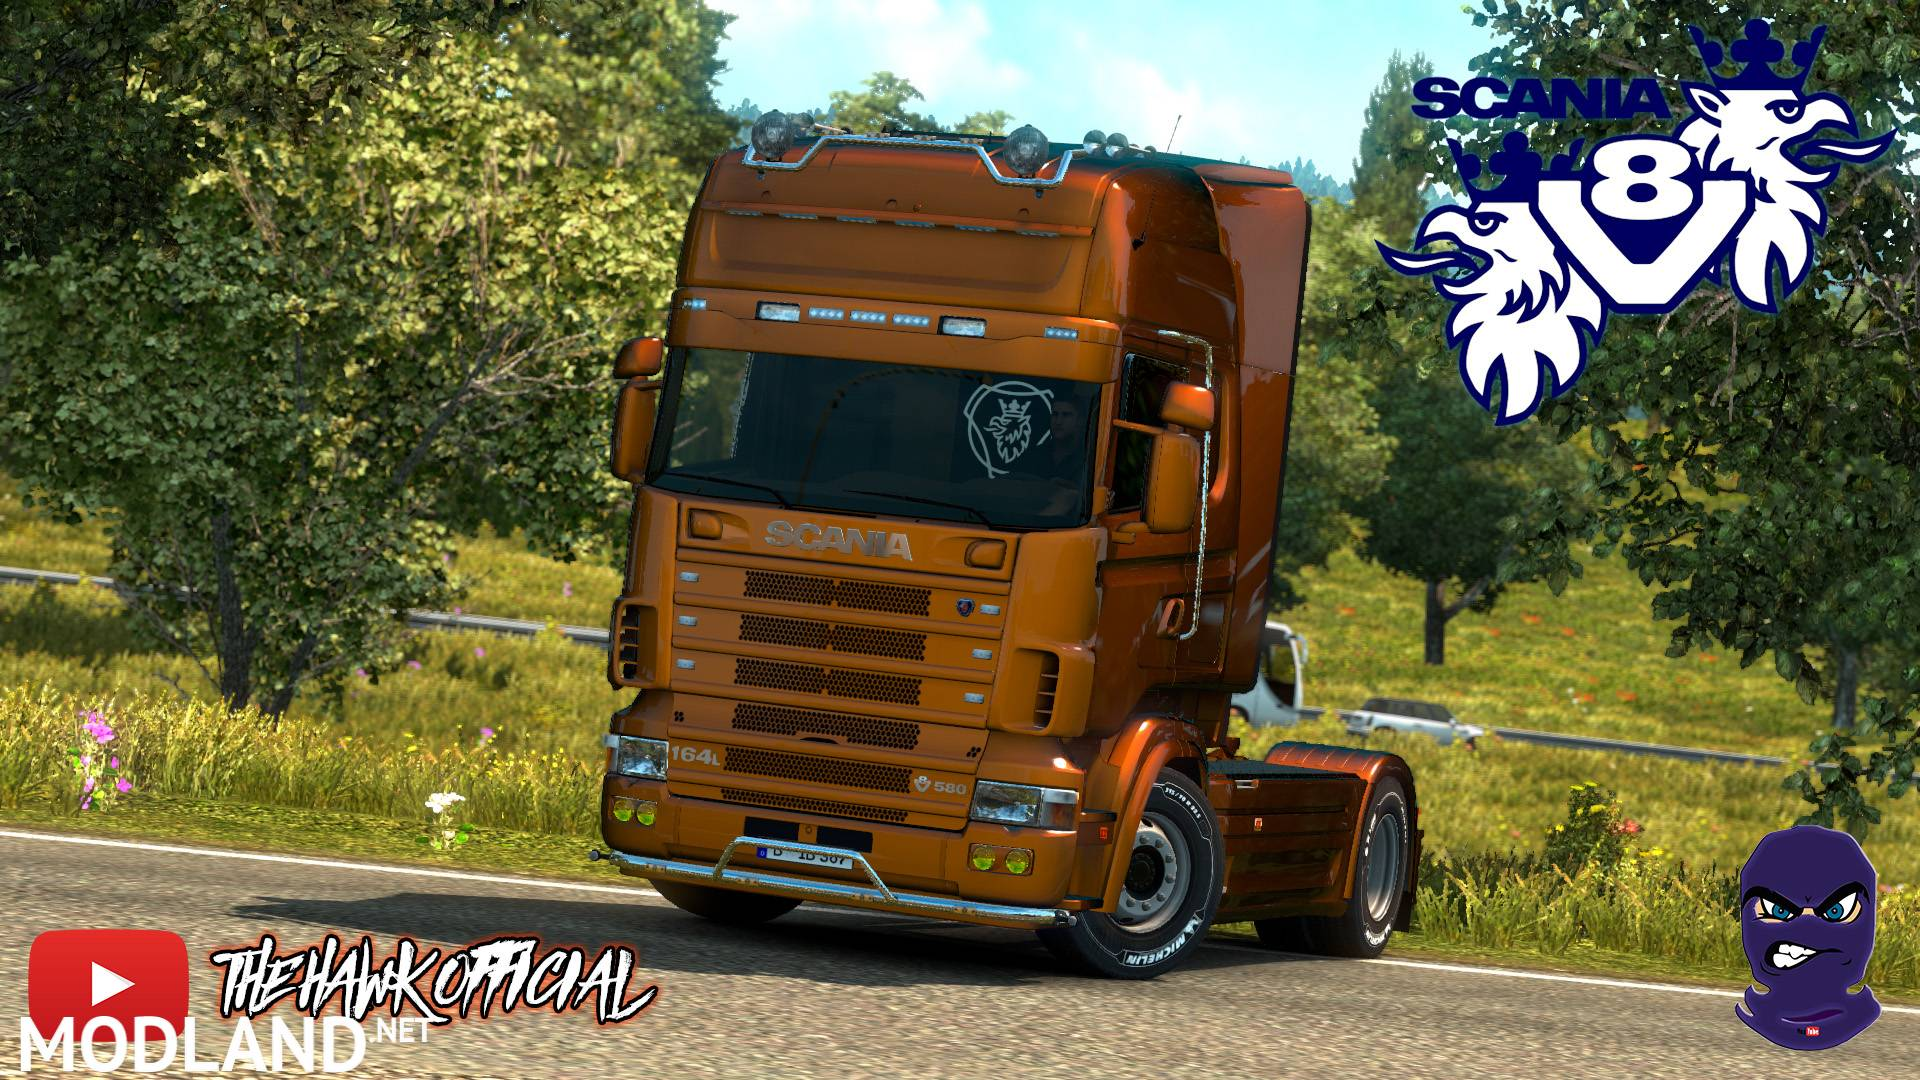 Open Pipe v8 sound for scania 4 series RJL mod for ETS 2